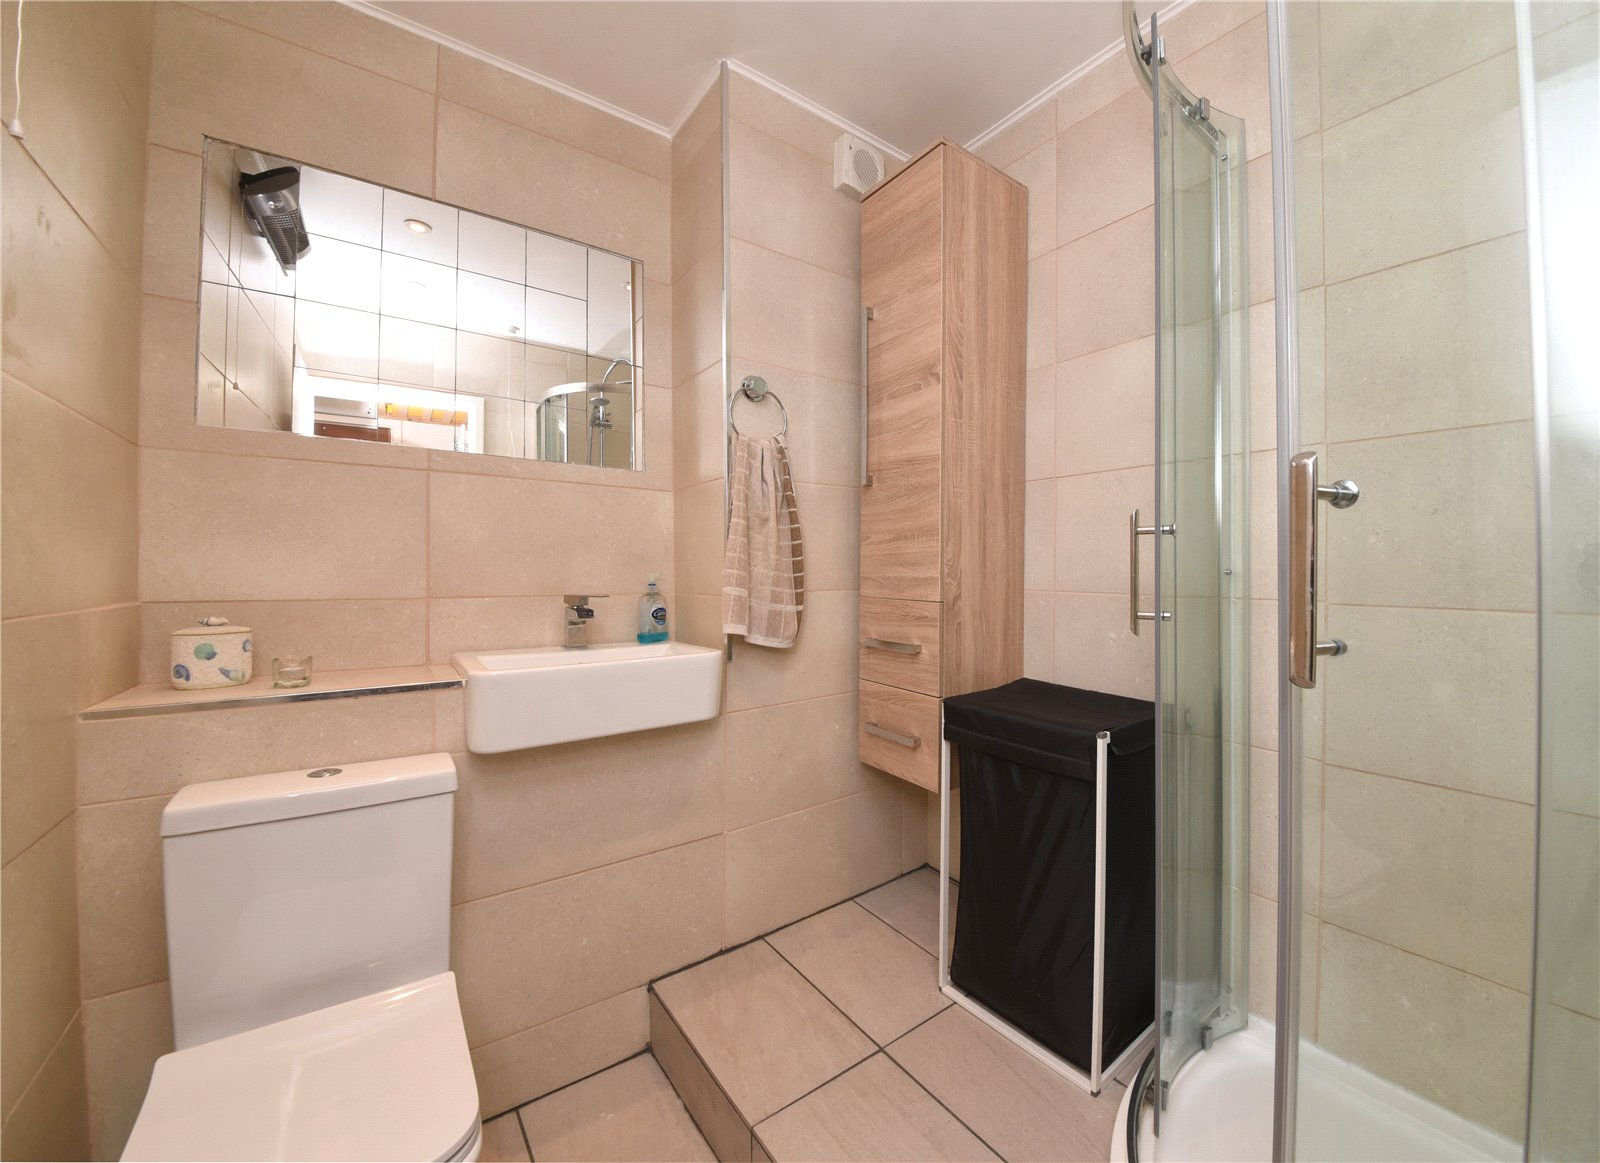 Apartment for sale in New Barnet, EN4 9PJ - Property Image 1